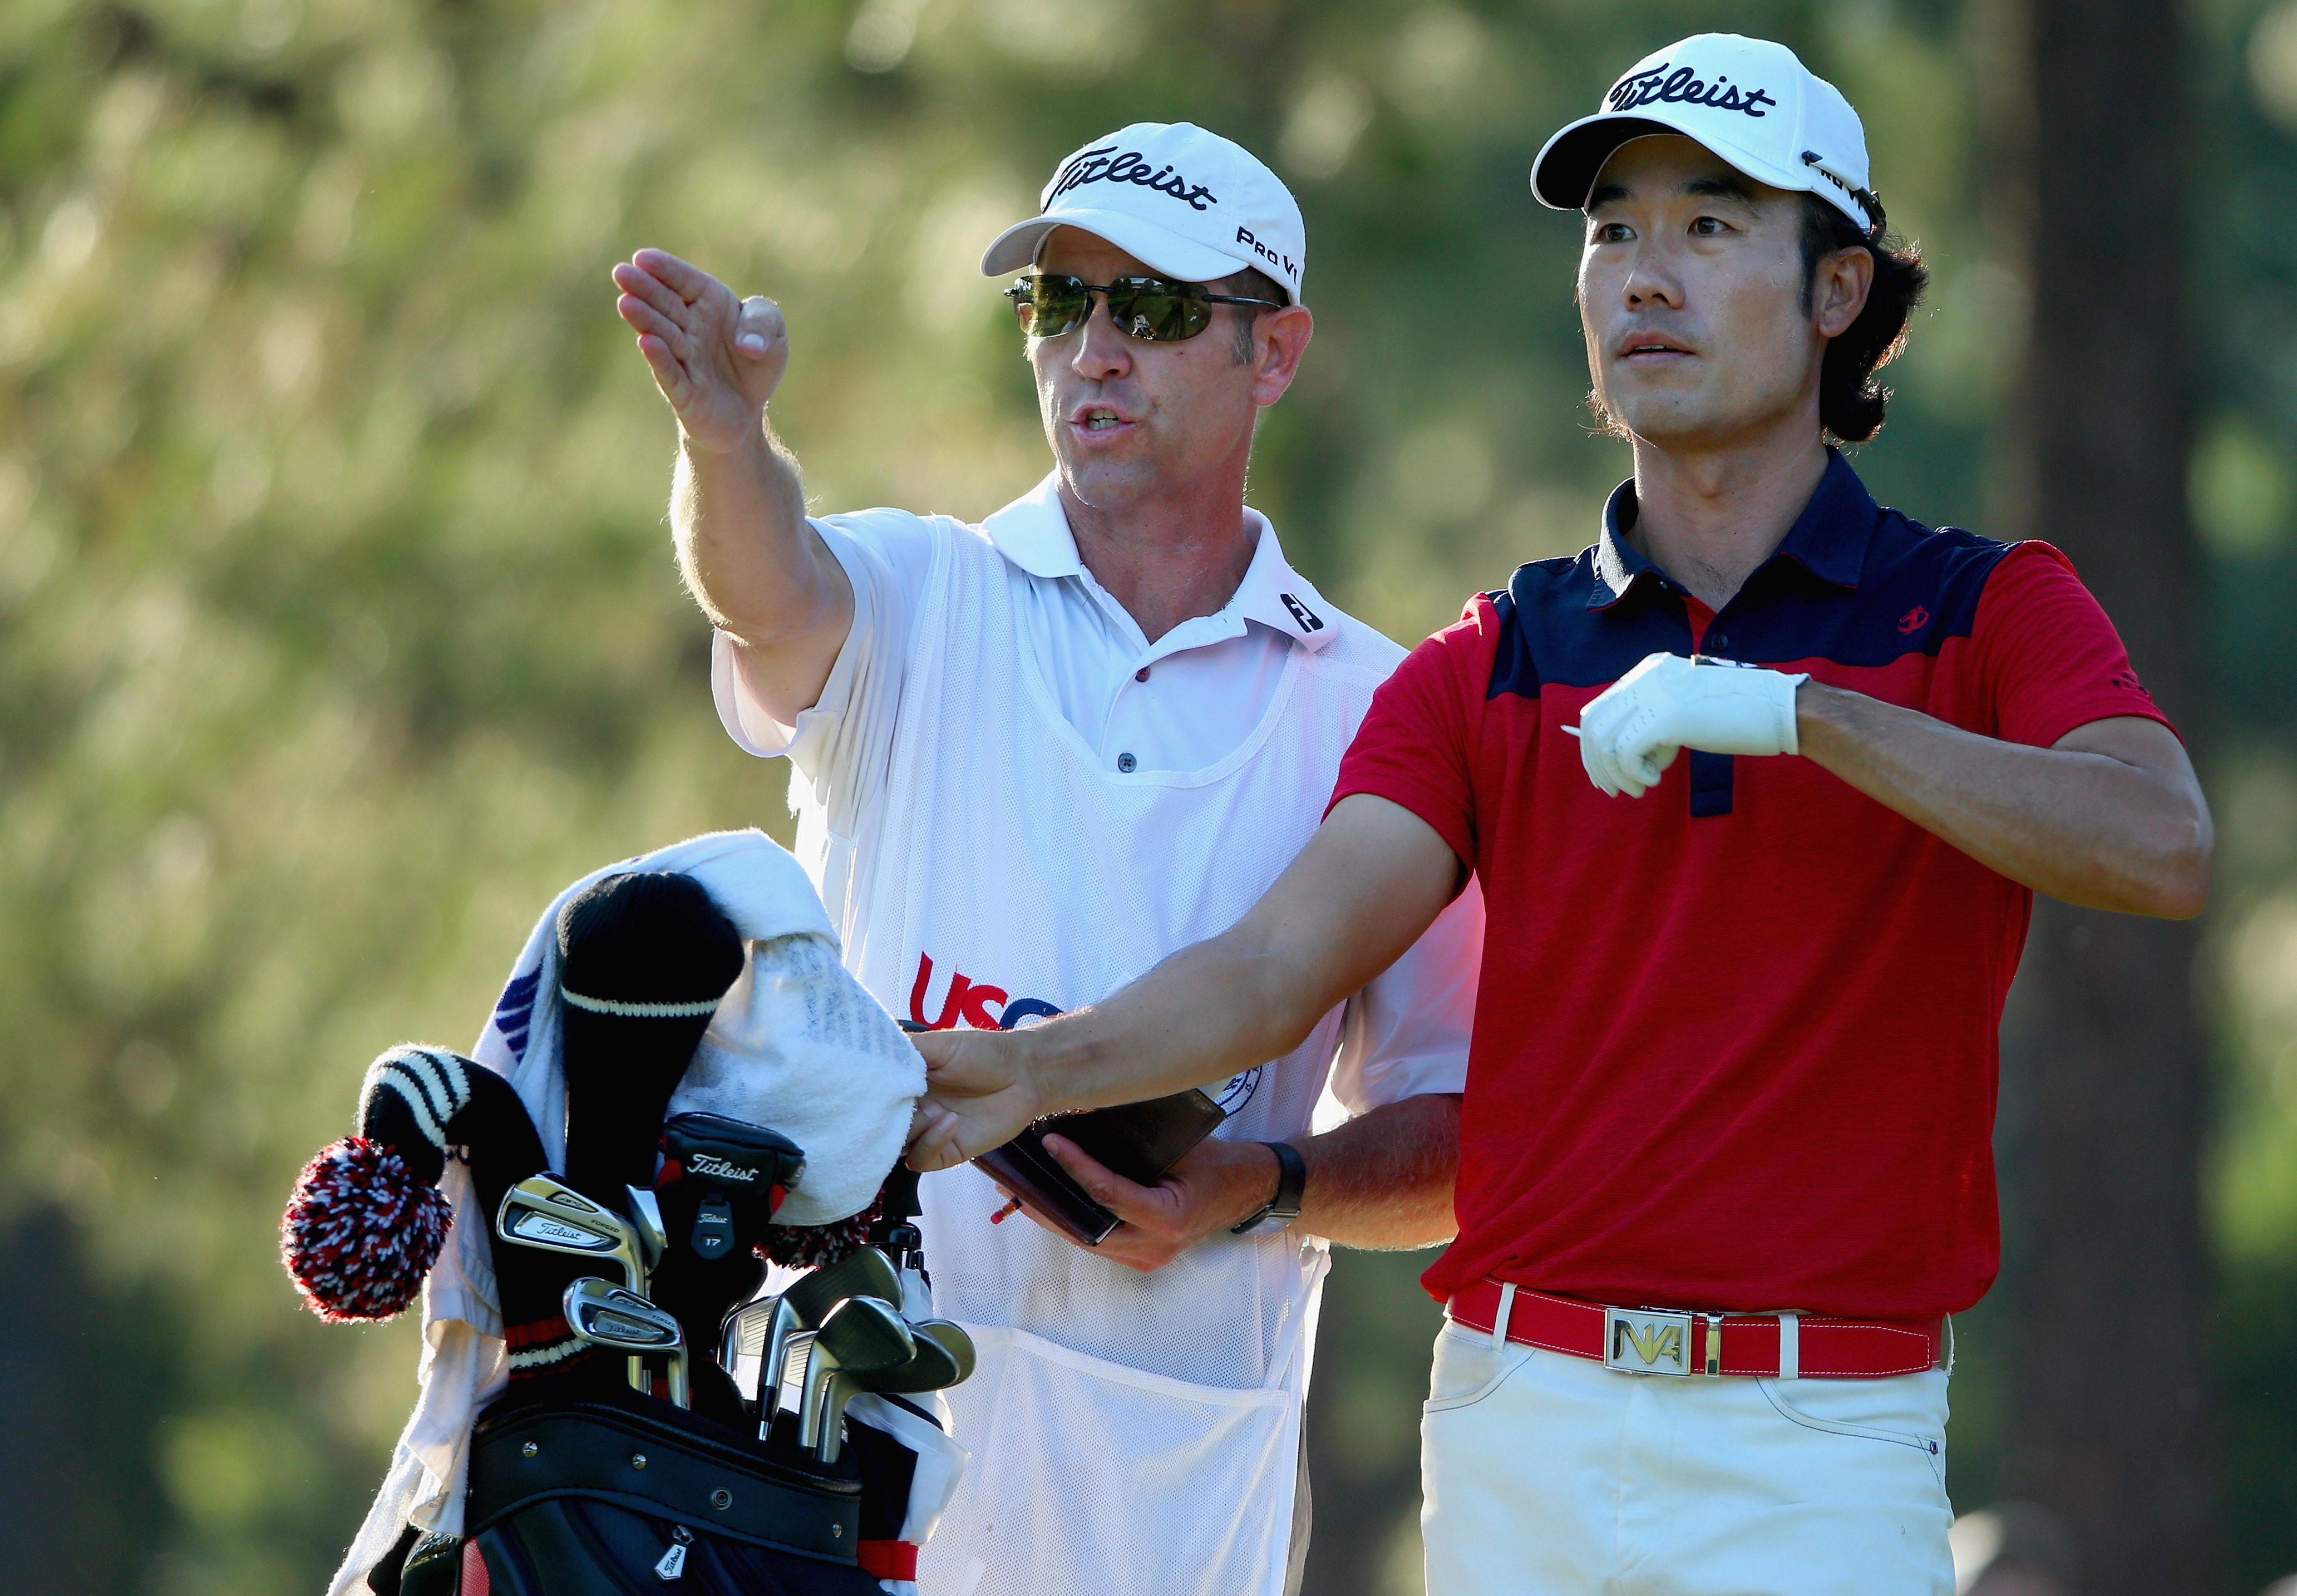 Kenny Harms has been caddying for Kevin Na since 2009.